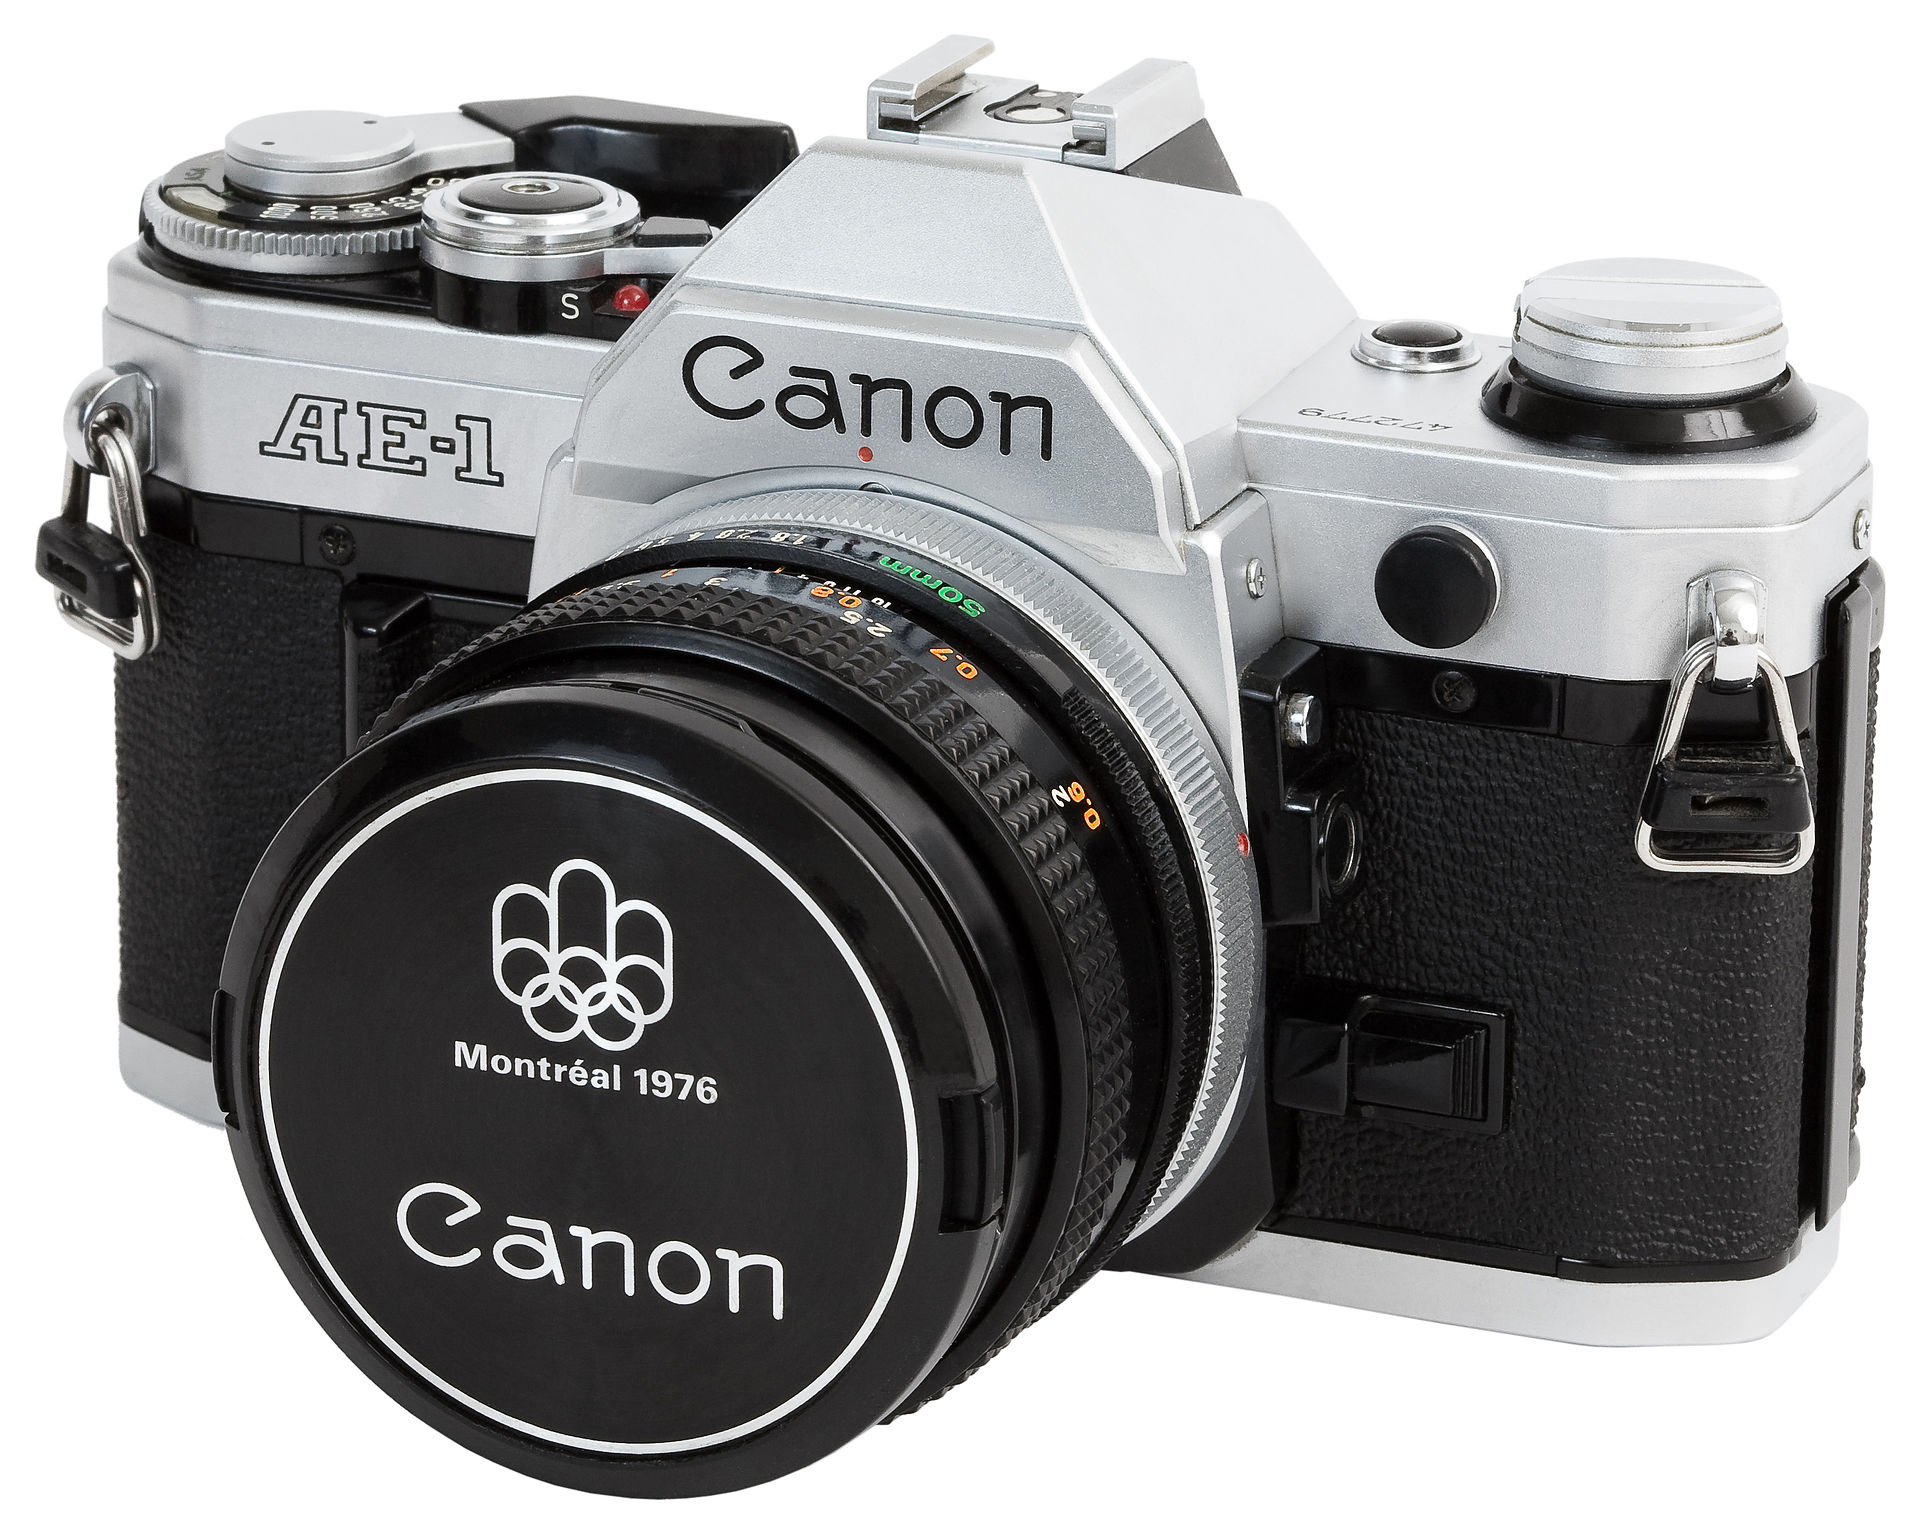 Canon AE-1 from en.wikipaedia